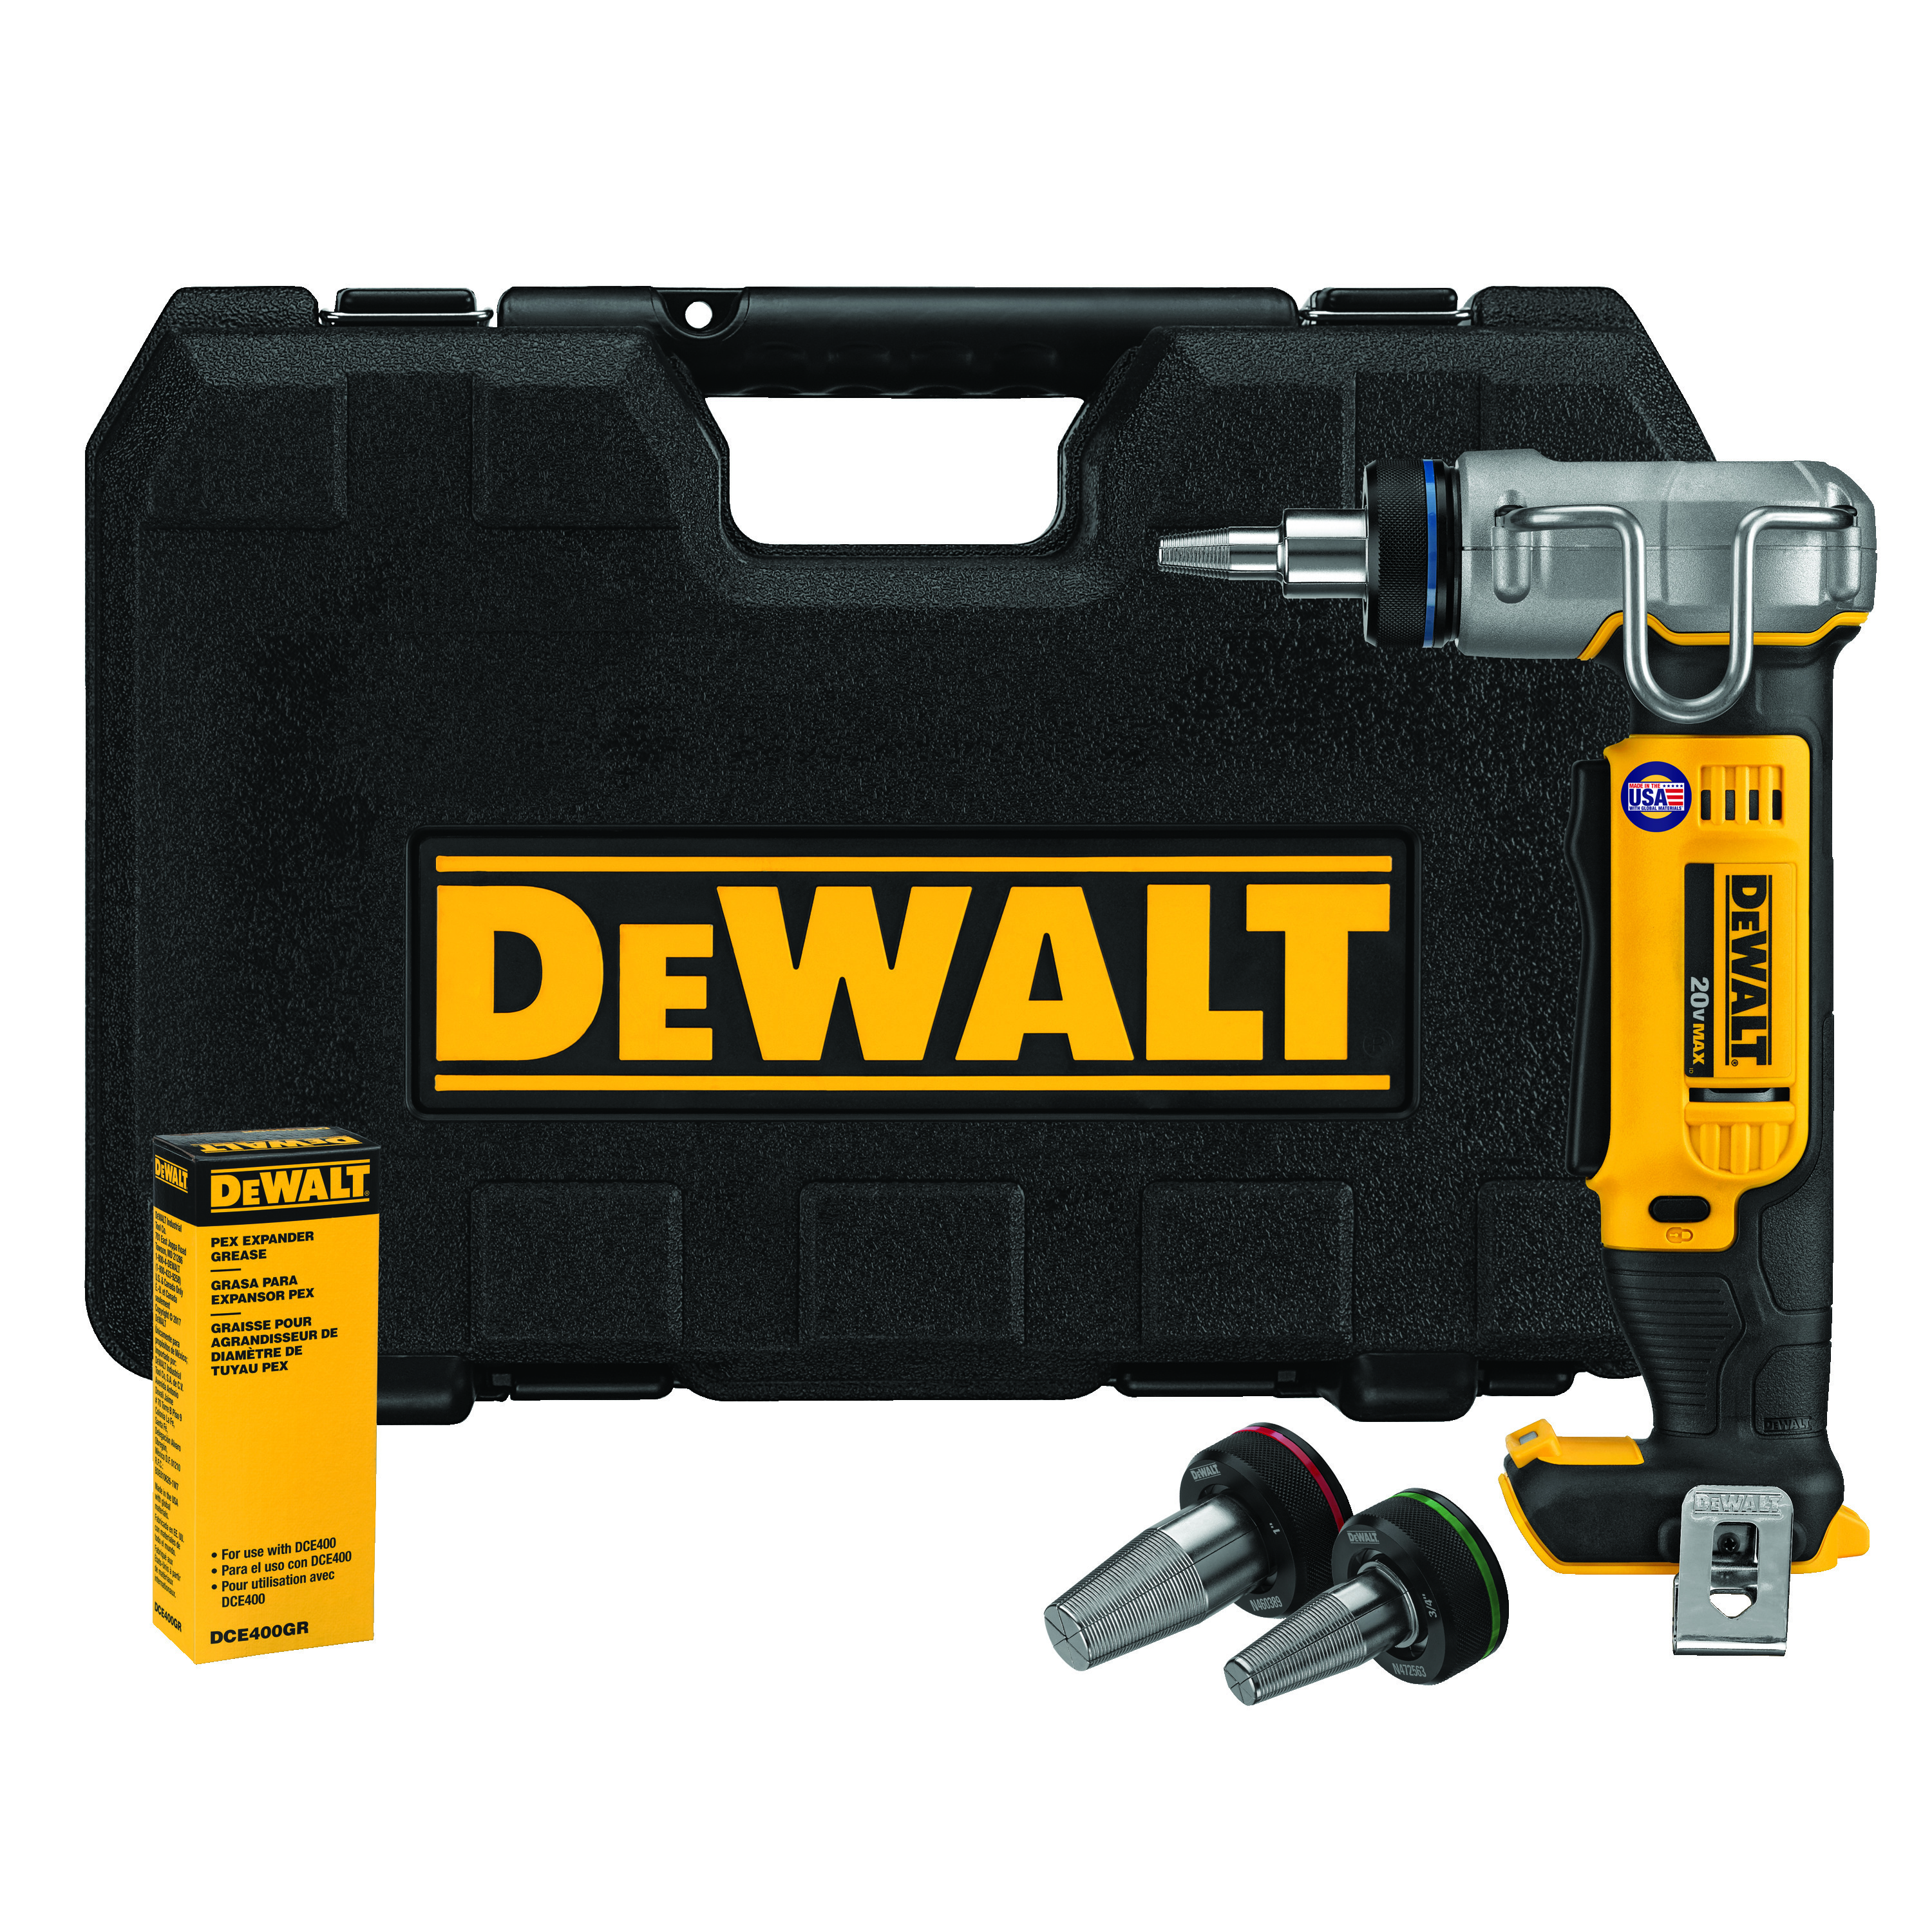 DeWALT® DCE400B Type A PEX Expander Kit, 3/8 to 1 in Tubing, 20 VDC, Lithium-Ion Battery